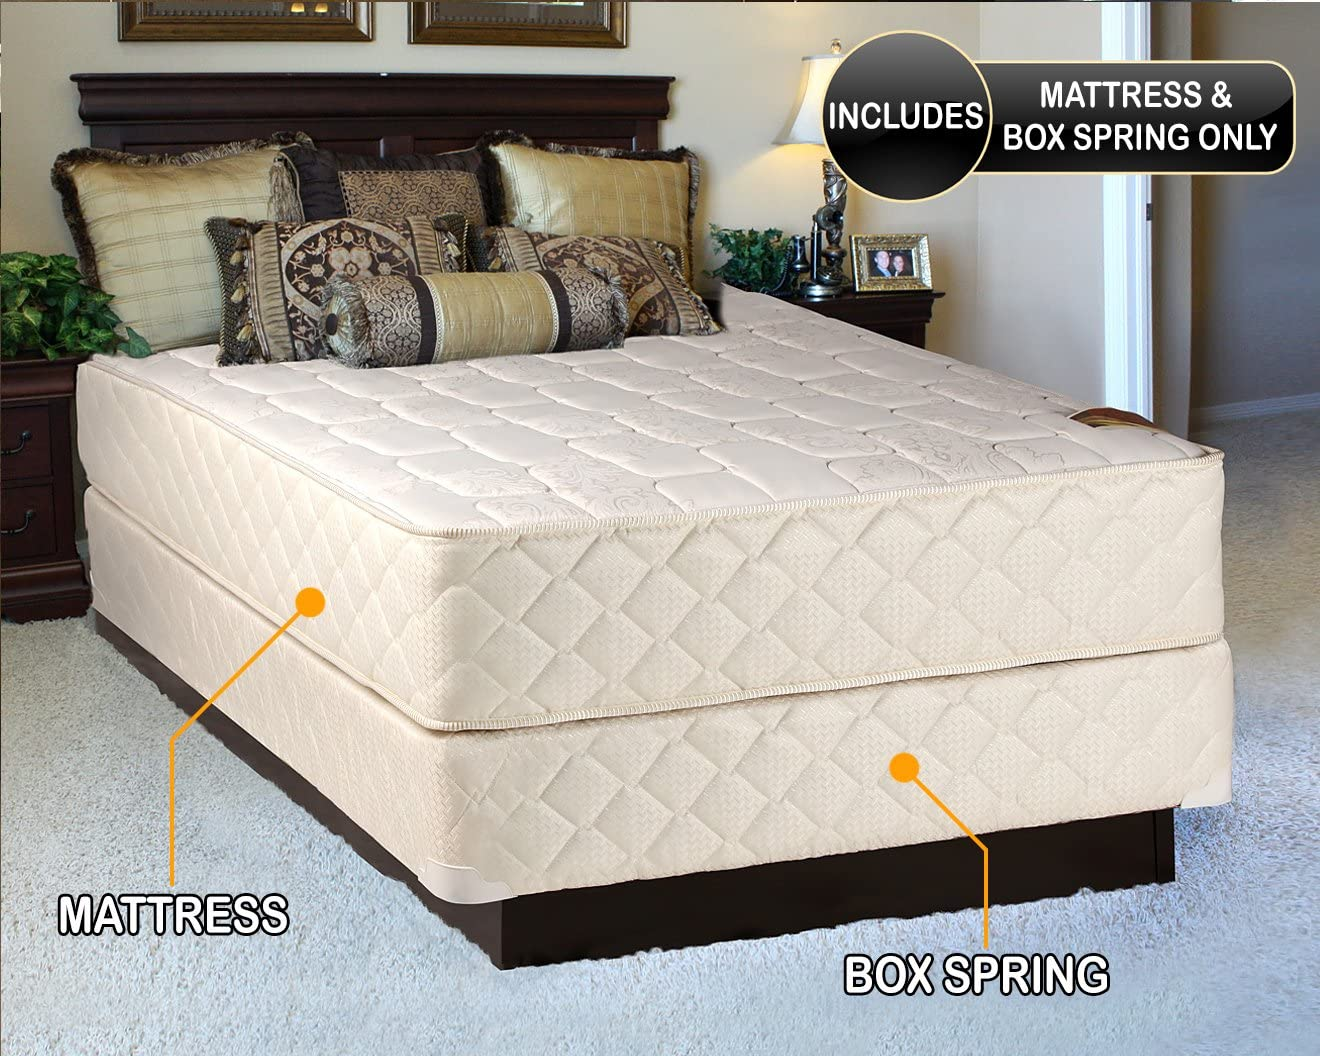 Amazon Com Grandeur Deluxe King Size 76 X80 X12 Mattress And Box Spring Set Fully Assembled Good For Your Back Luxury Height Long Lasting And 2 Sided By Dream Solutions Usa Kitchen